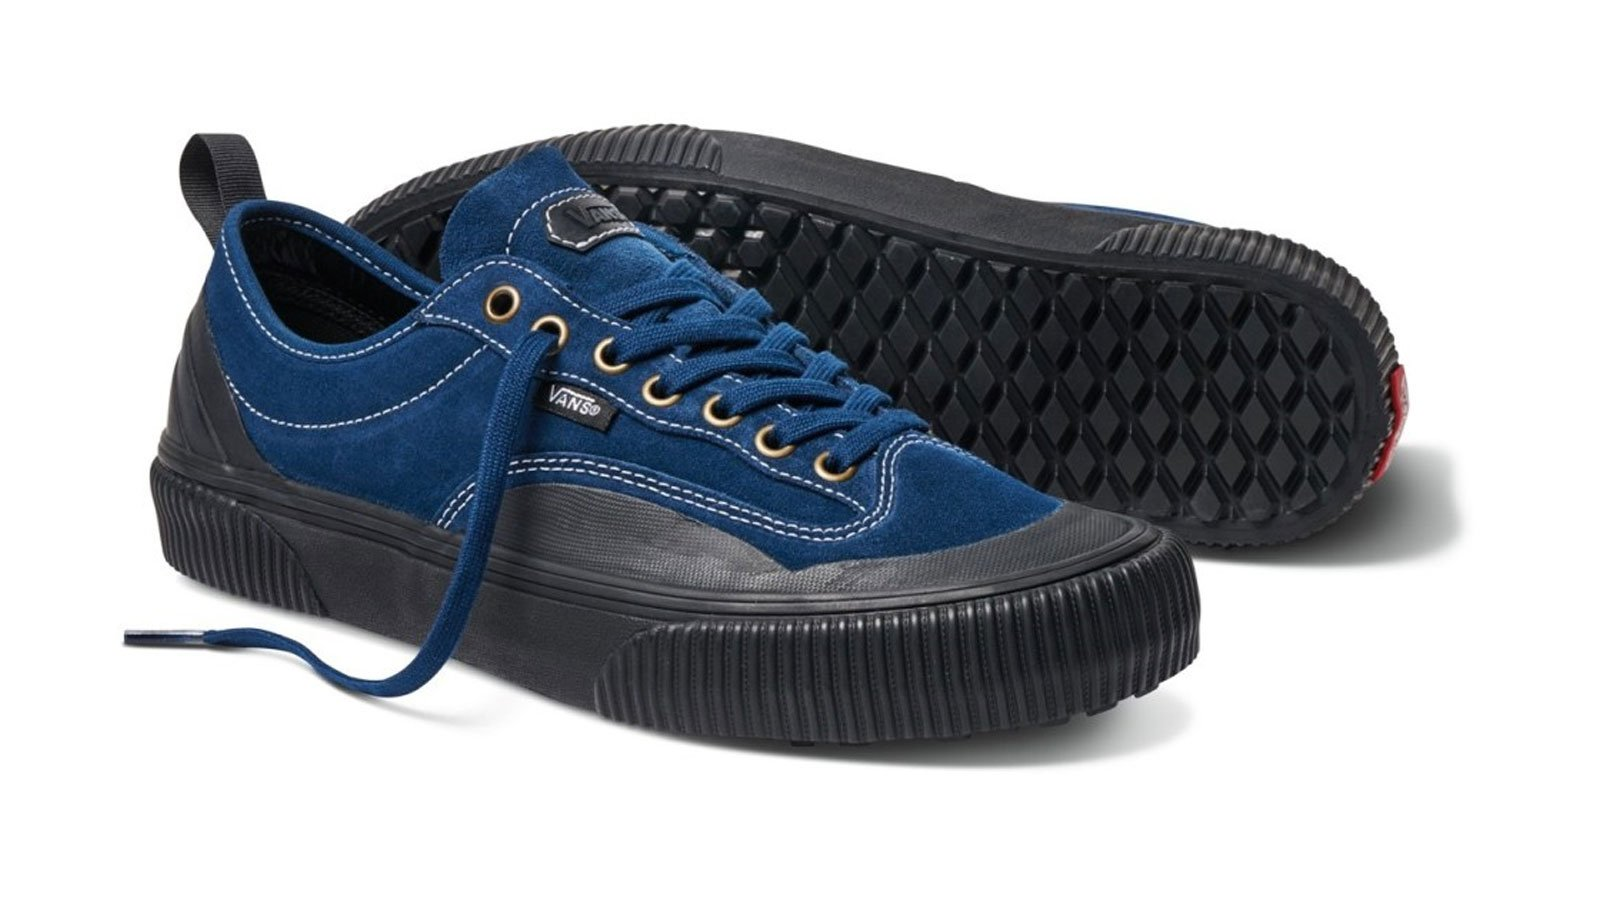 Vans All Terrain Destruct SF